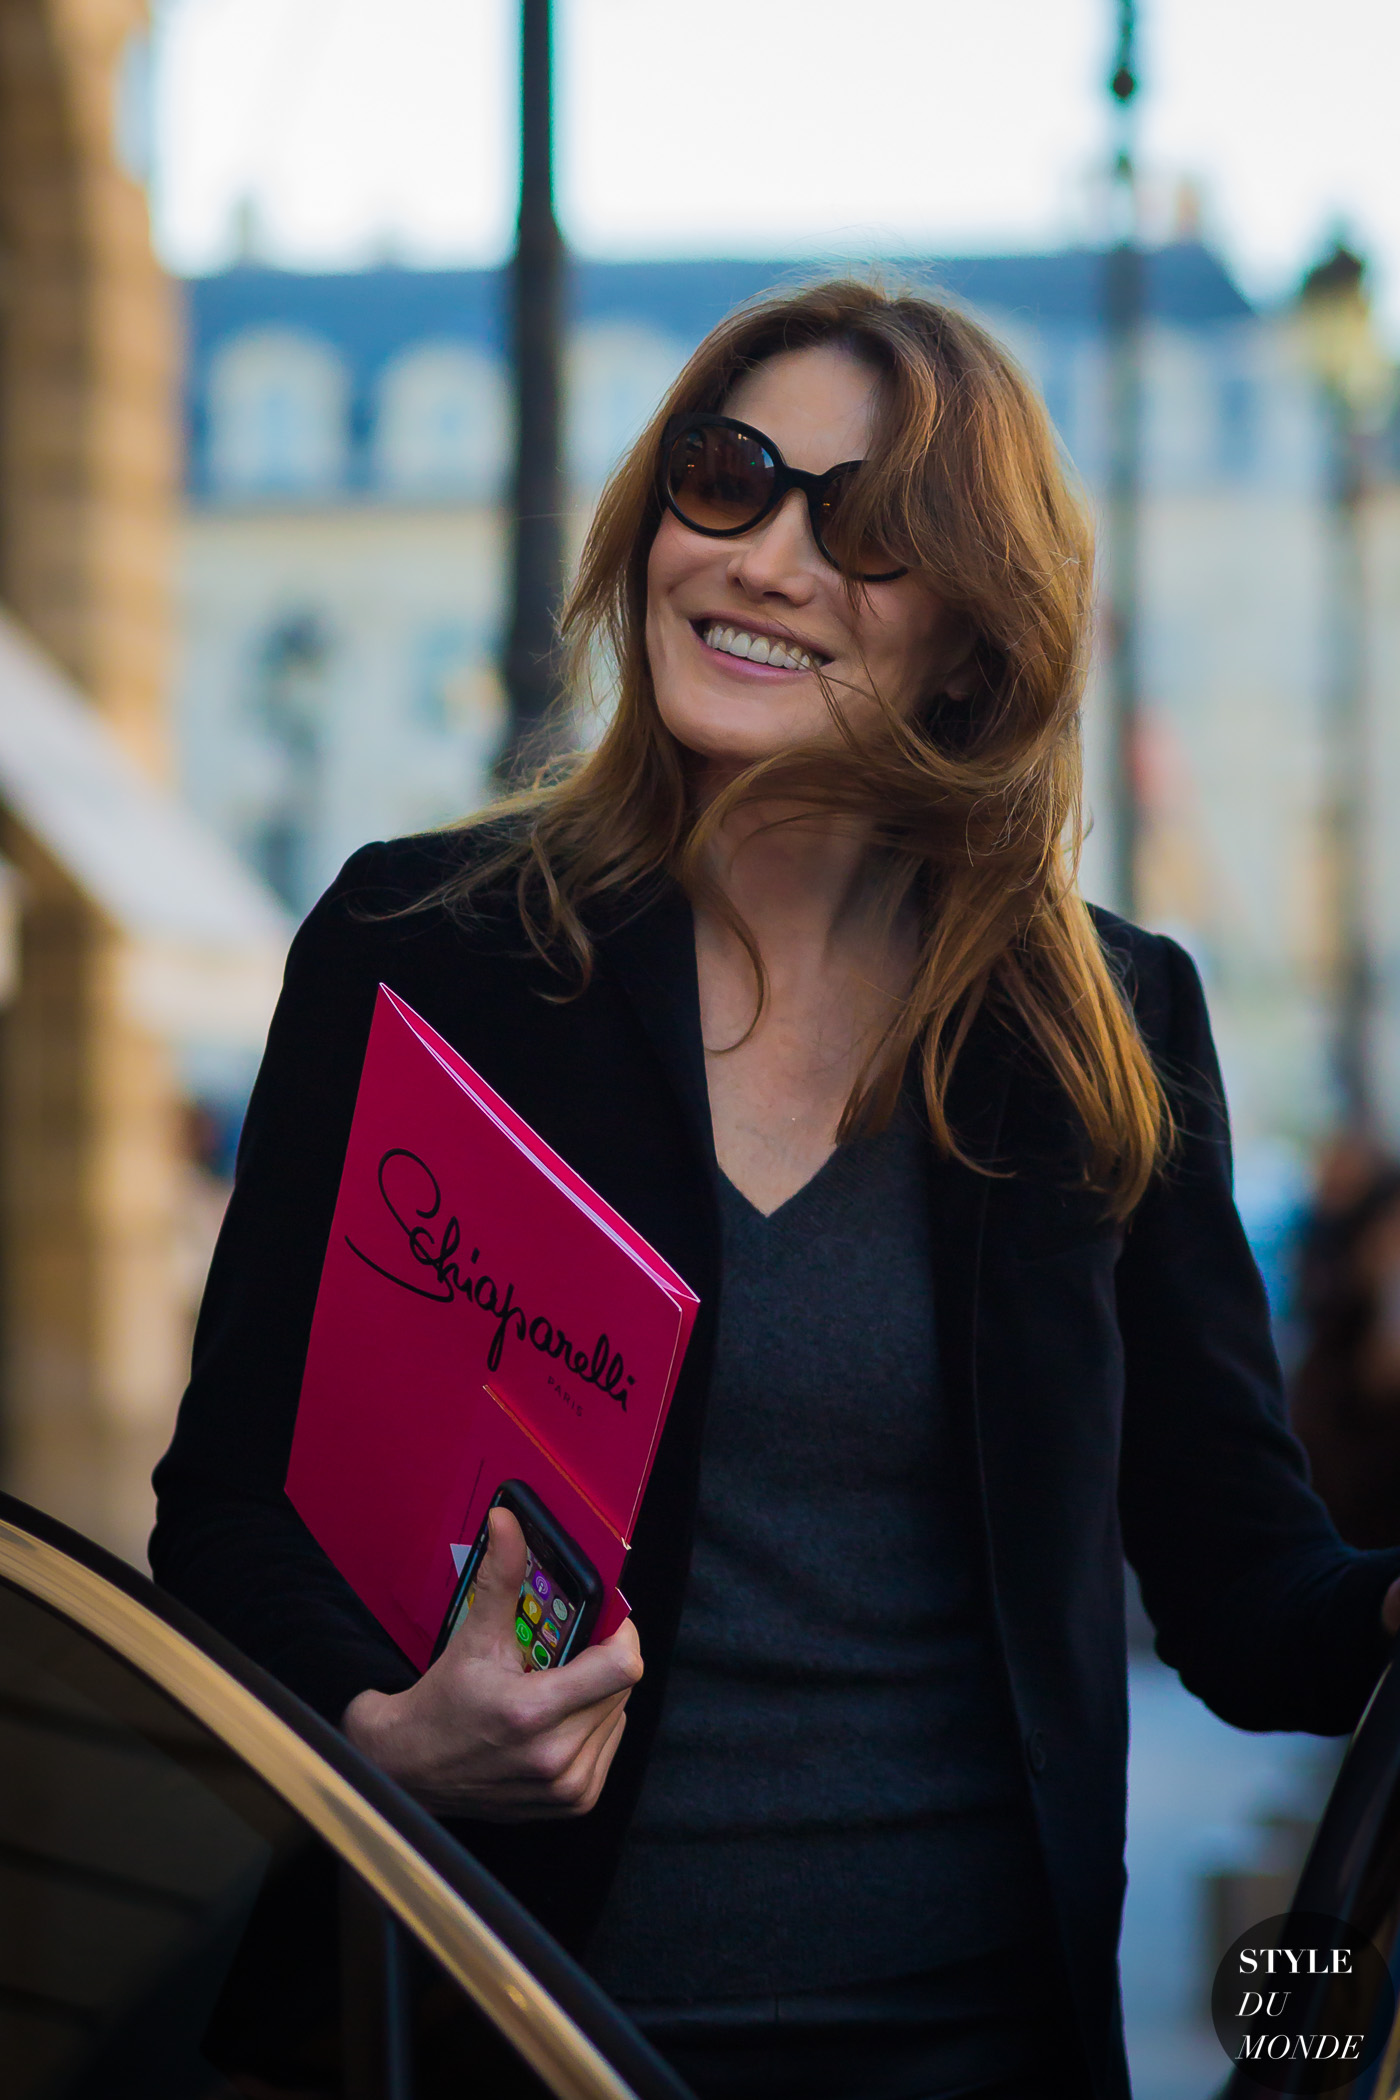 Carla Bruni Street Style Street Fashion Streetsnaps by STYLEDUMONDE Street Style Fashion Photography